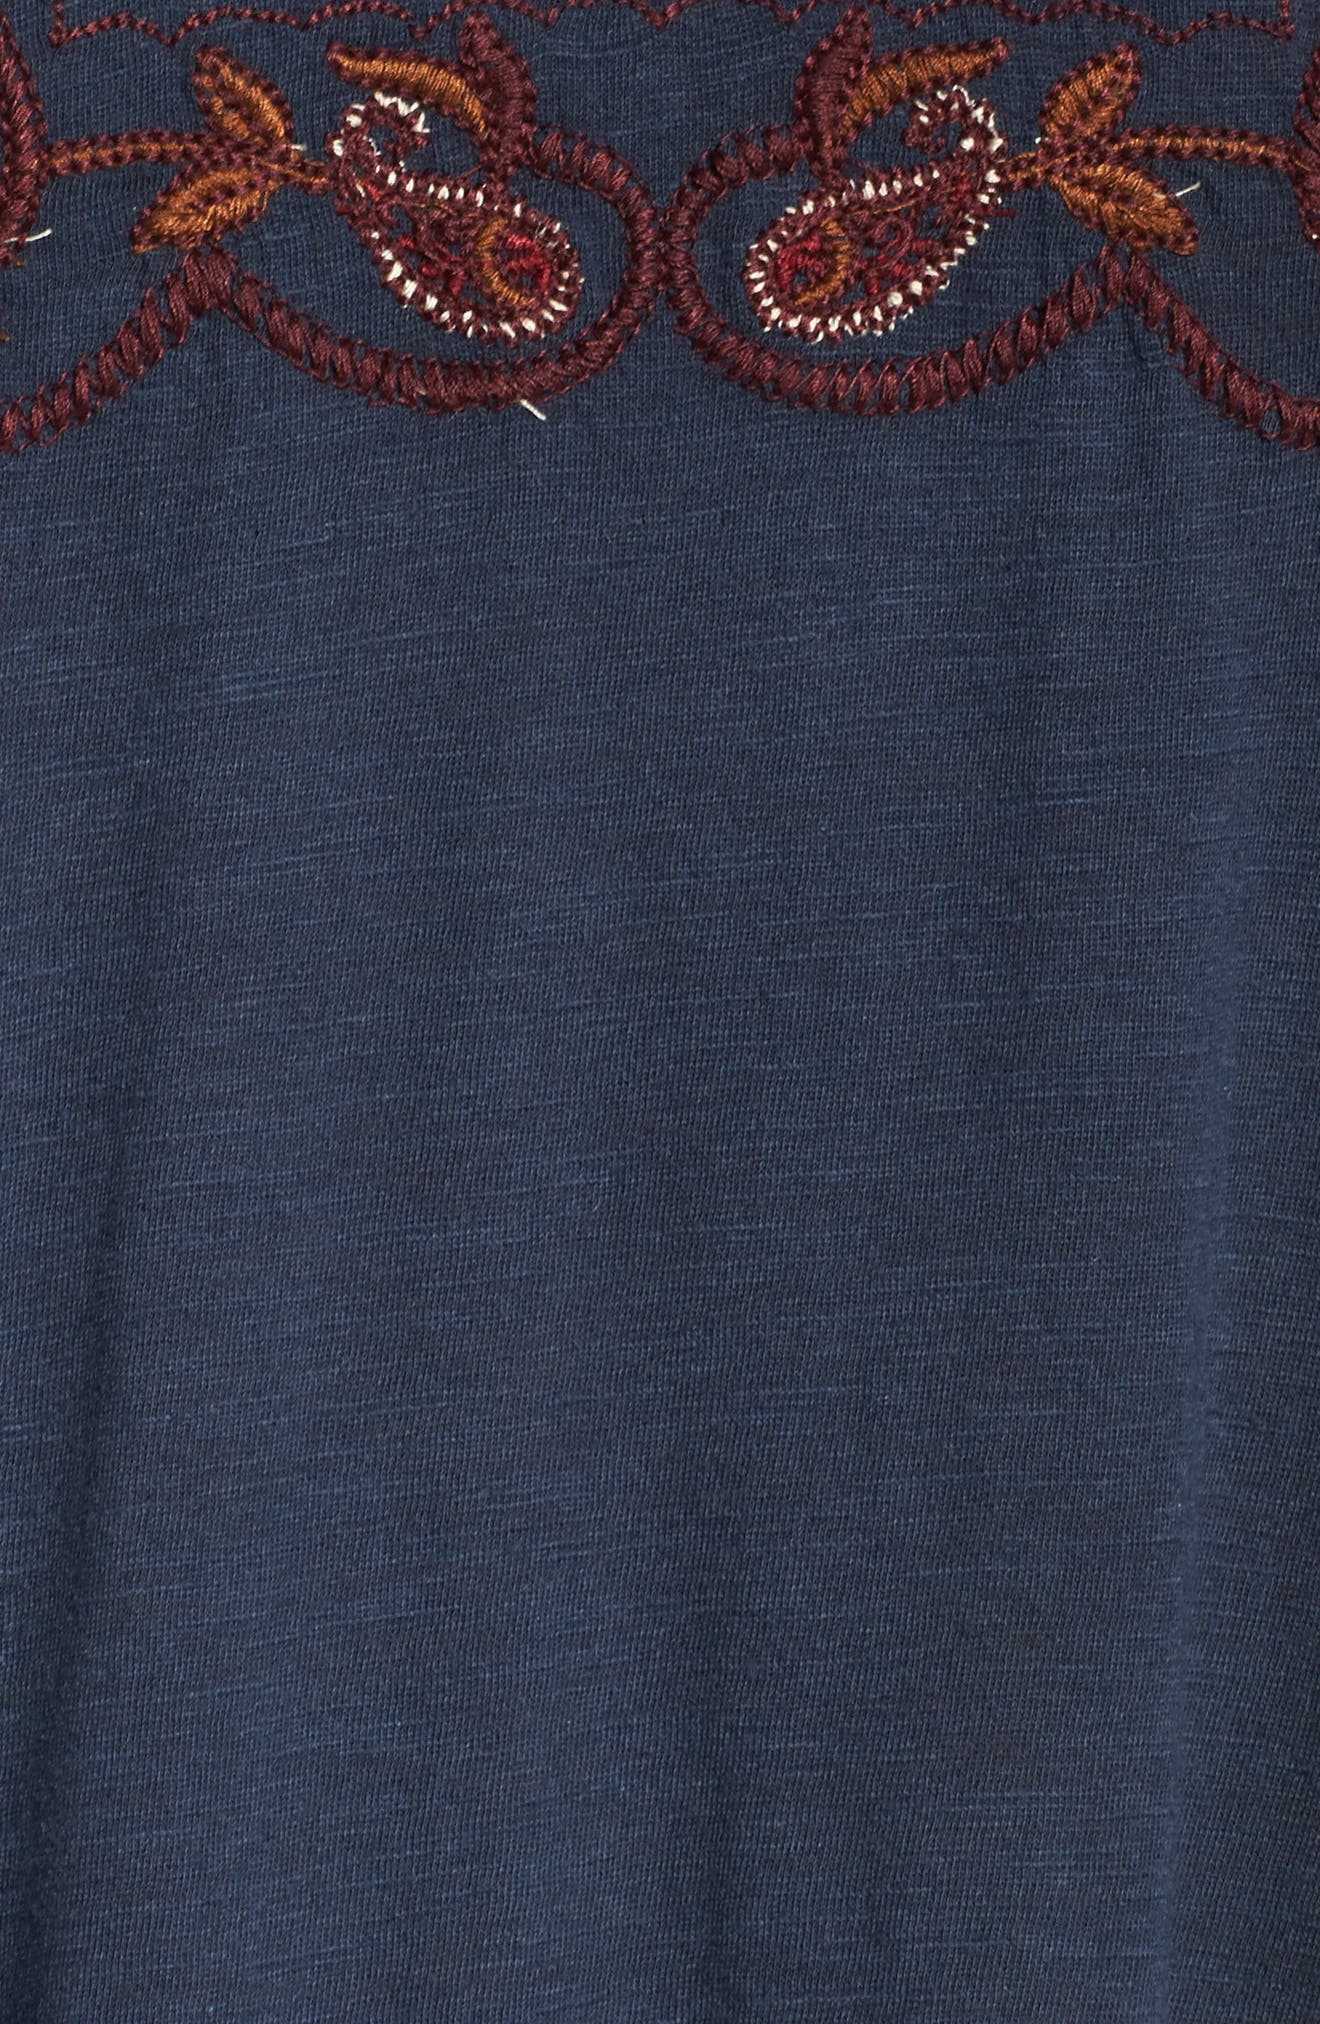 Alternate Image 5  - Lucky Brand Lace Up Embroidered Peasant Top (Plus Size)